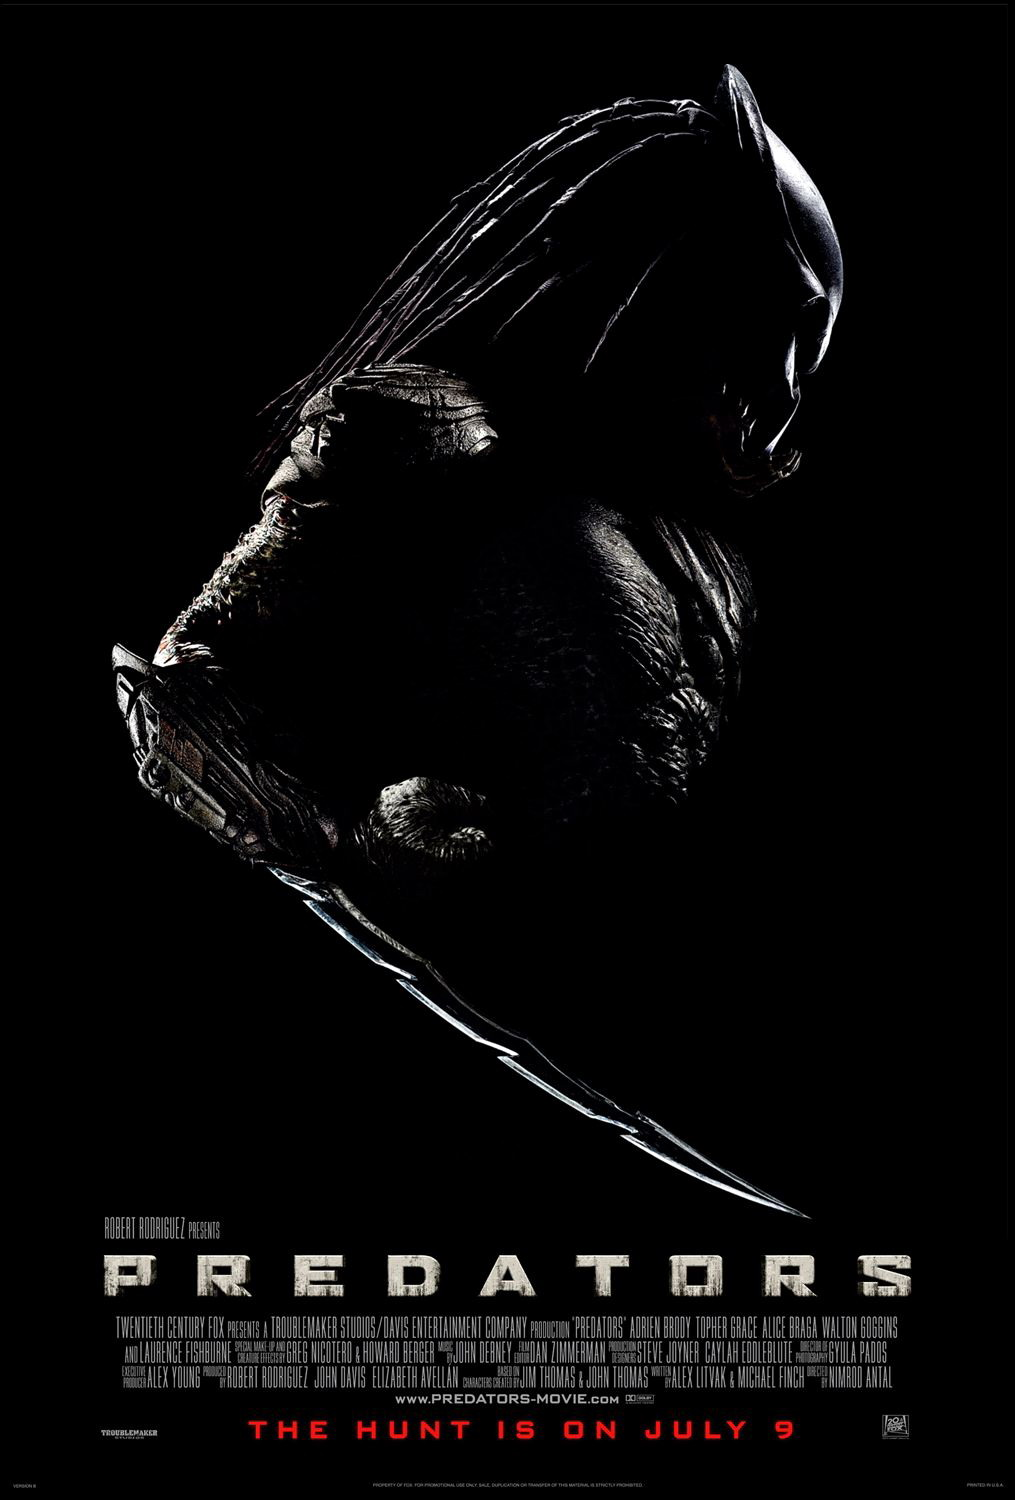 Predators Poster - 2010 MovieYeezus Movie Poster